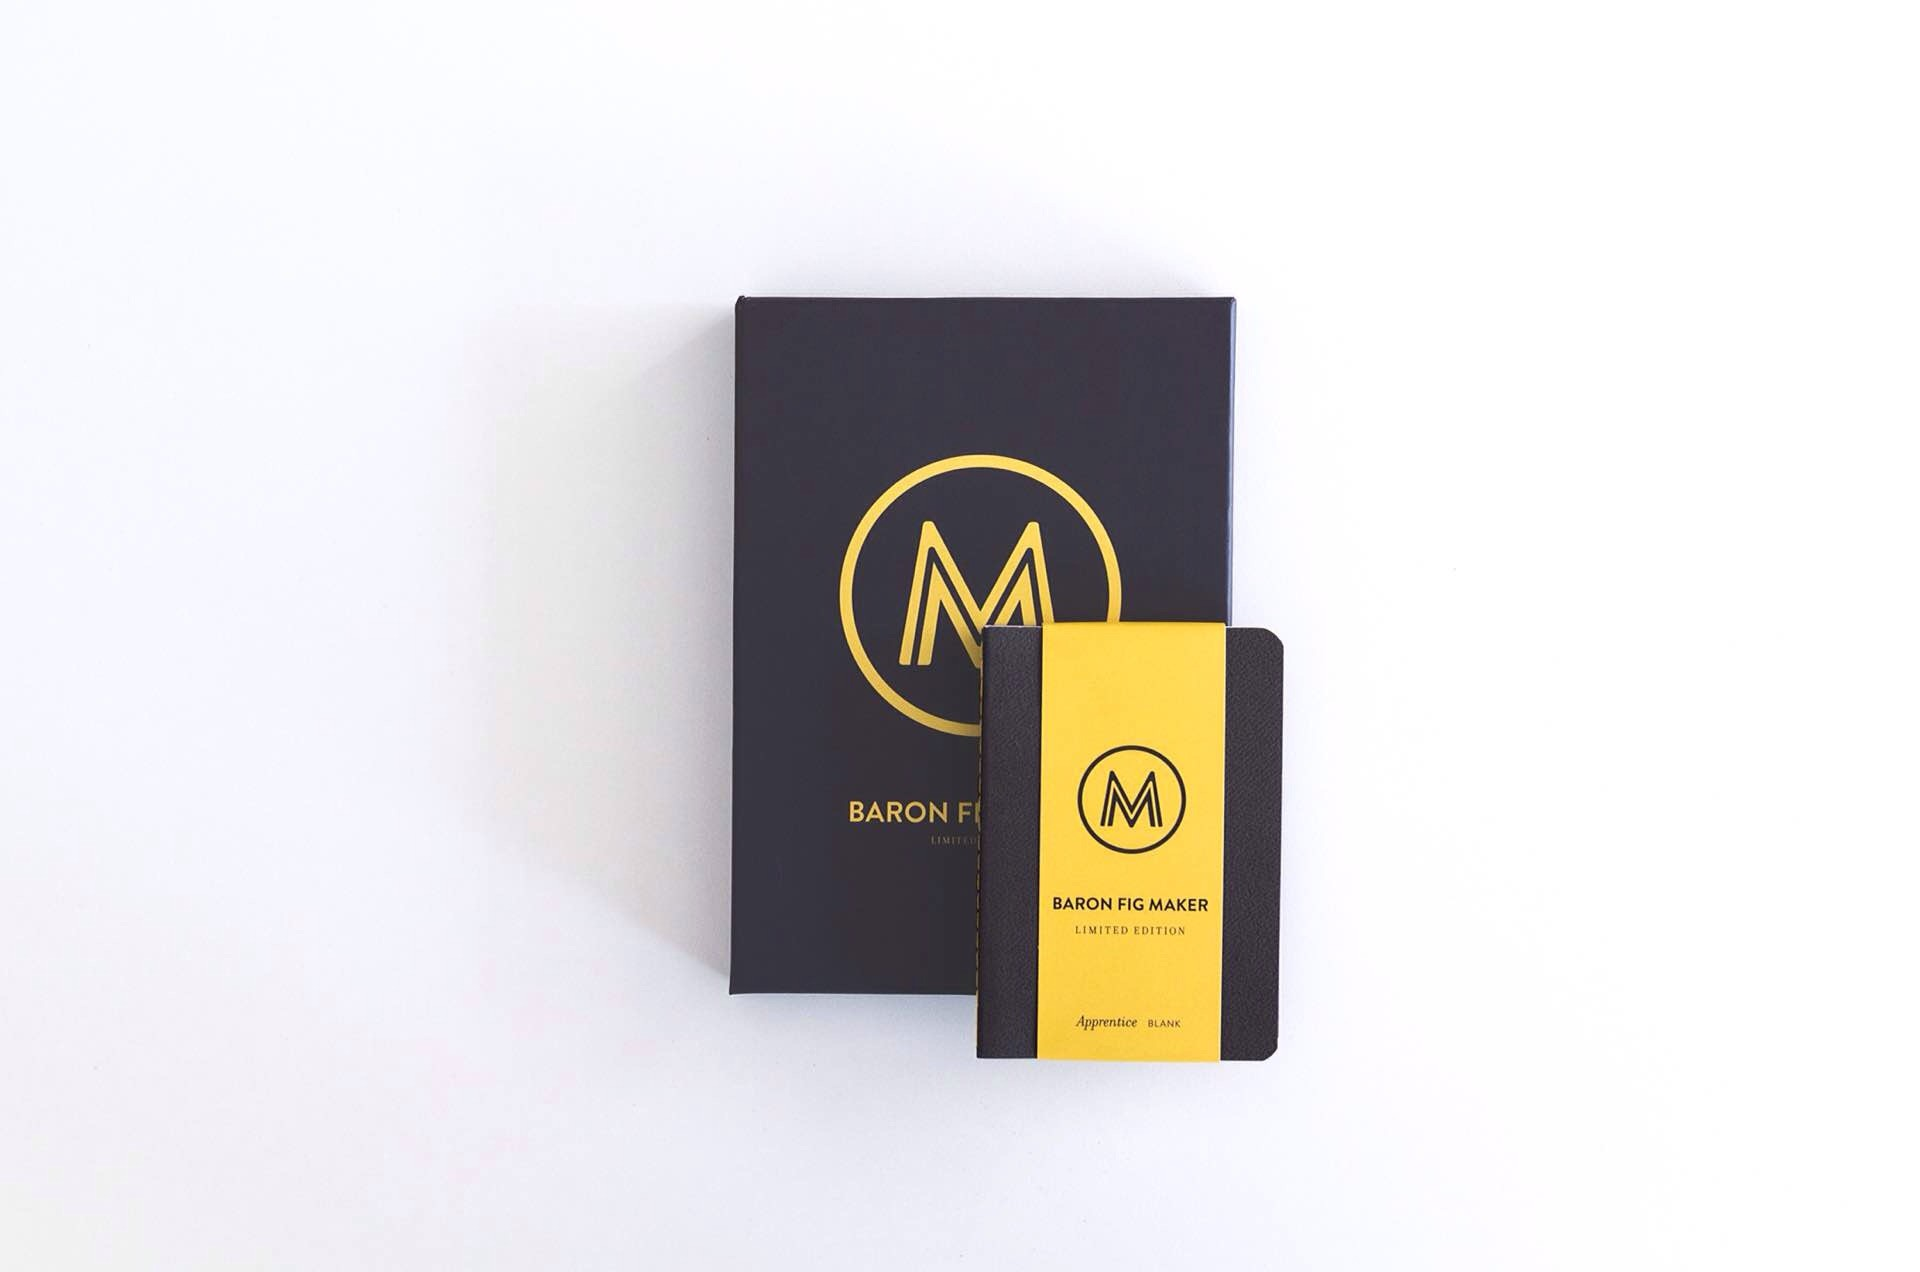 baron-fig-limited-edition-maker-notebooks-2